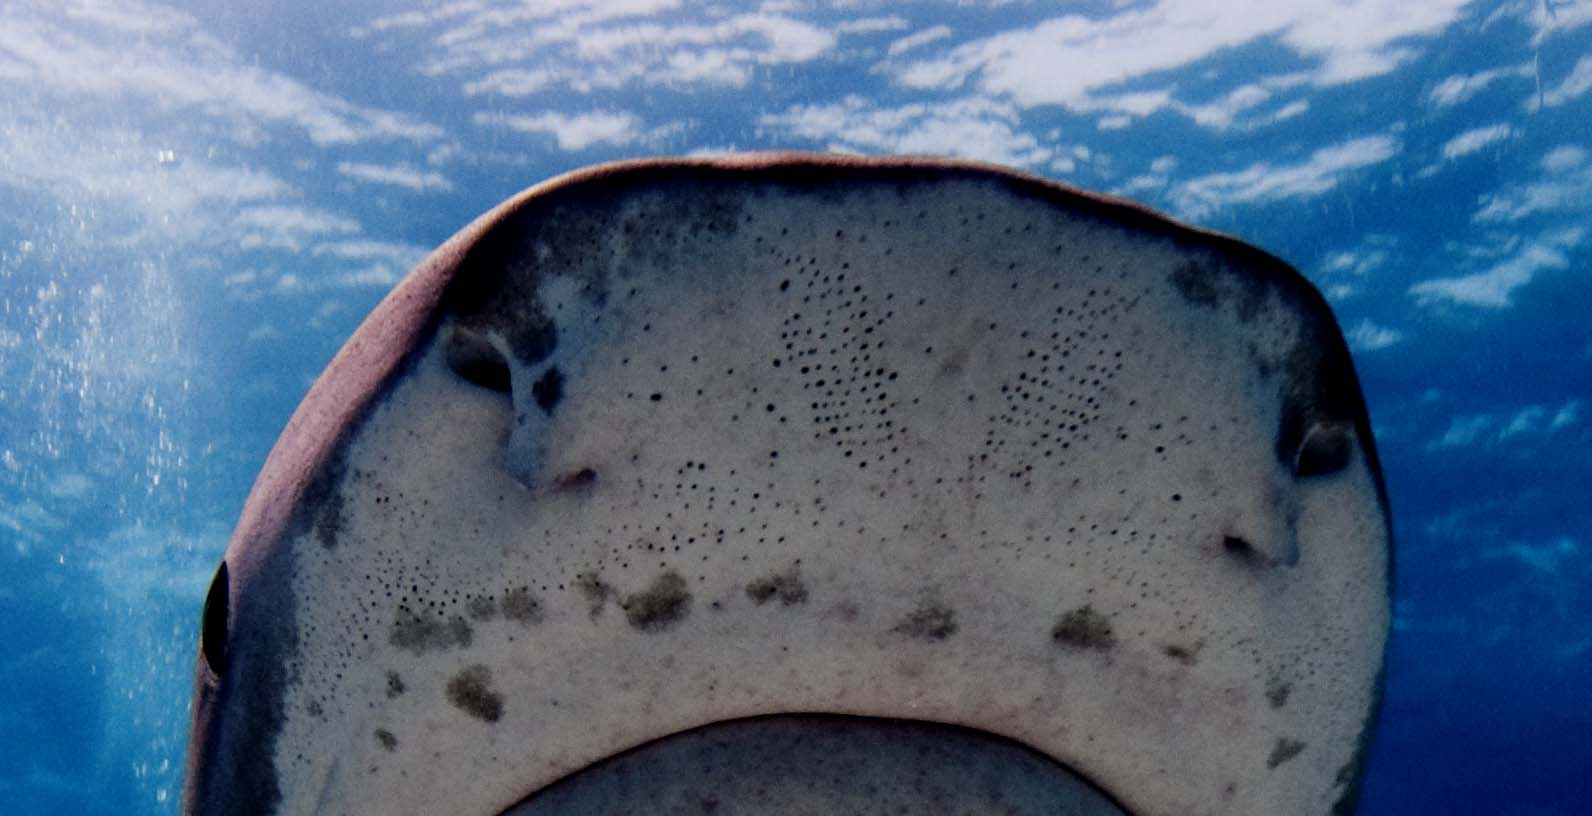 <p><strong>(B)</strong> Ampullae of Lorenzini pores on the snout of a tiger shark</p>